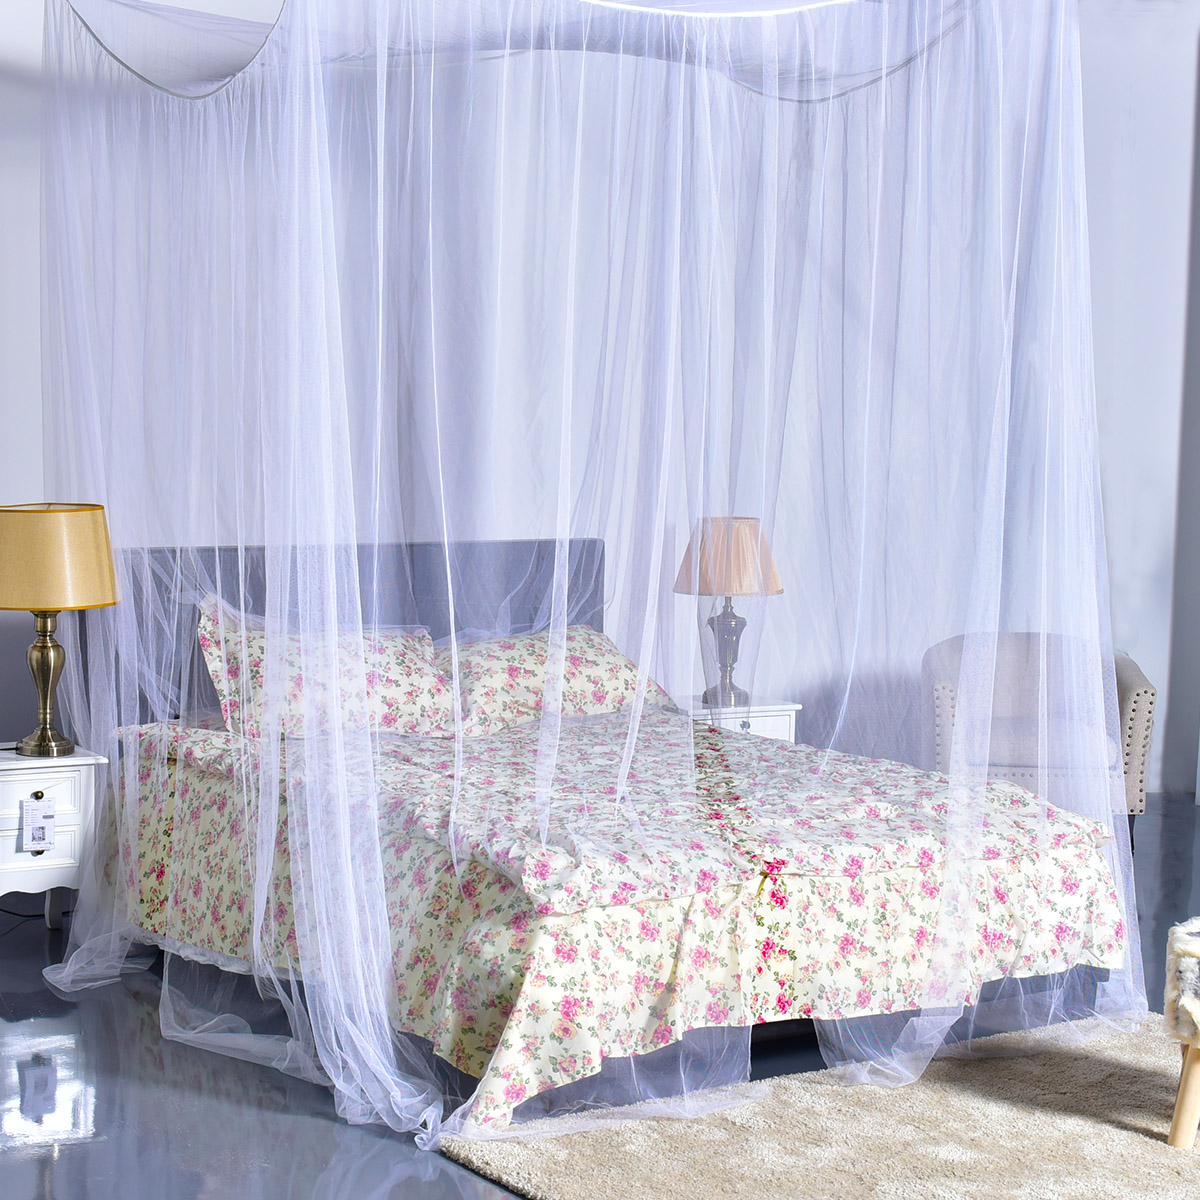 4 Corner Post Bed Canopy Mosquito Net Full Queen King Size Netting ... for Mosquito Net For Bed Walmart  76uhy